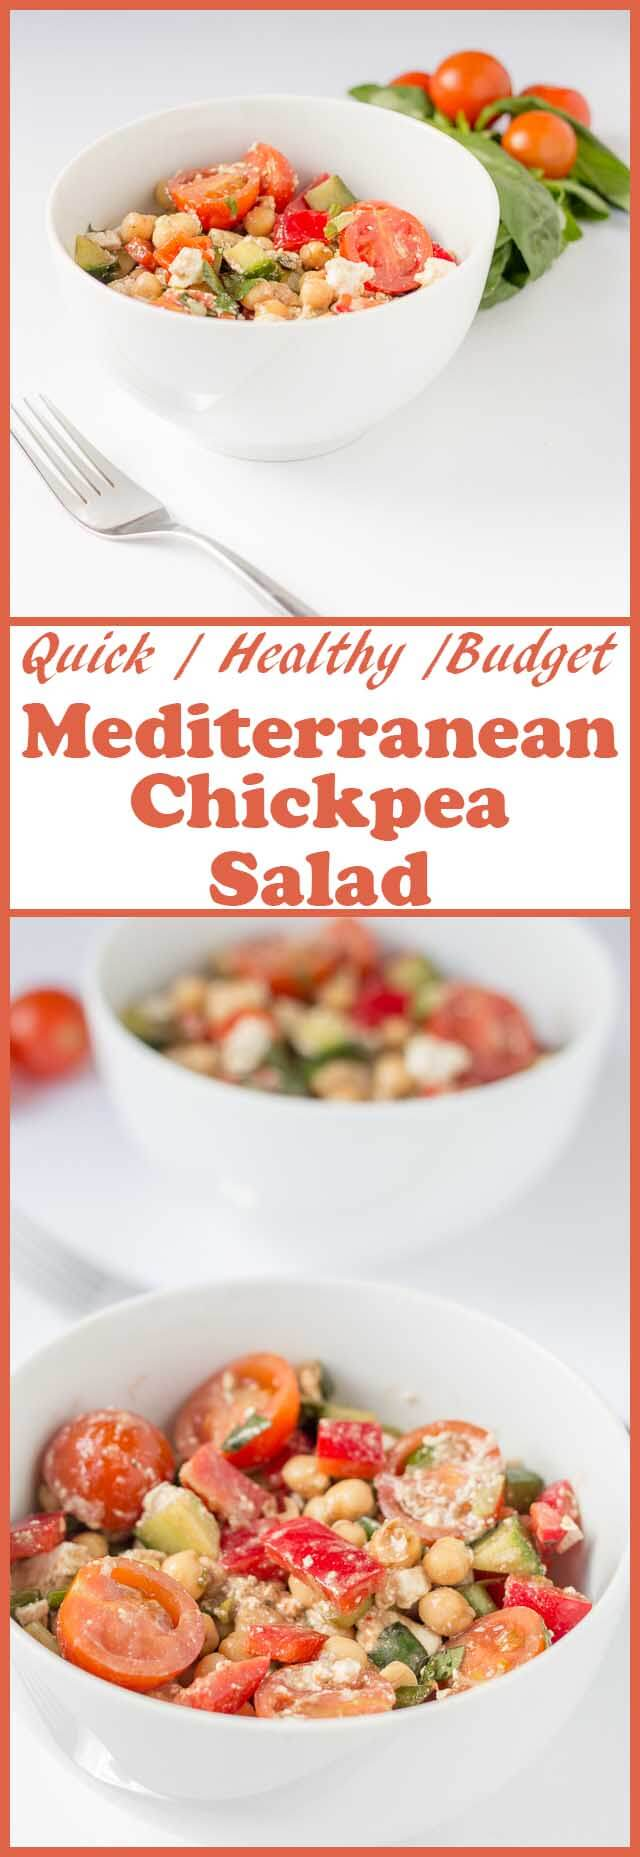 Mediterranean chickpea salad is an easy, budget and vibrant vegetarian salad simply bursting with flavour. This is the perfect all year round salad to remind you of sunny days and warm climates even though it may not be the same outside!